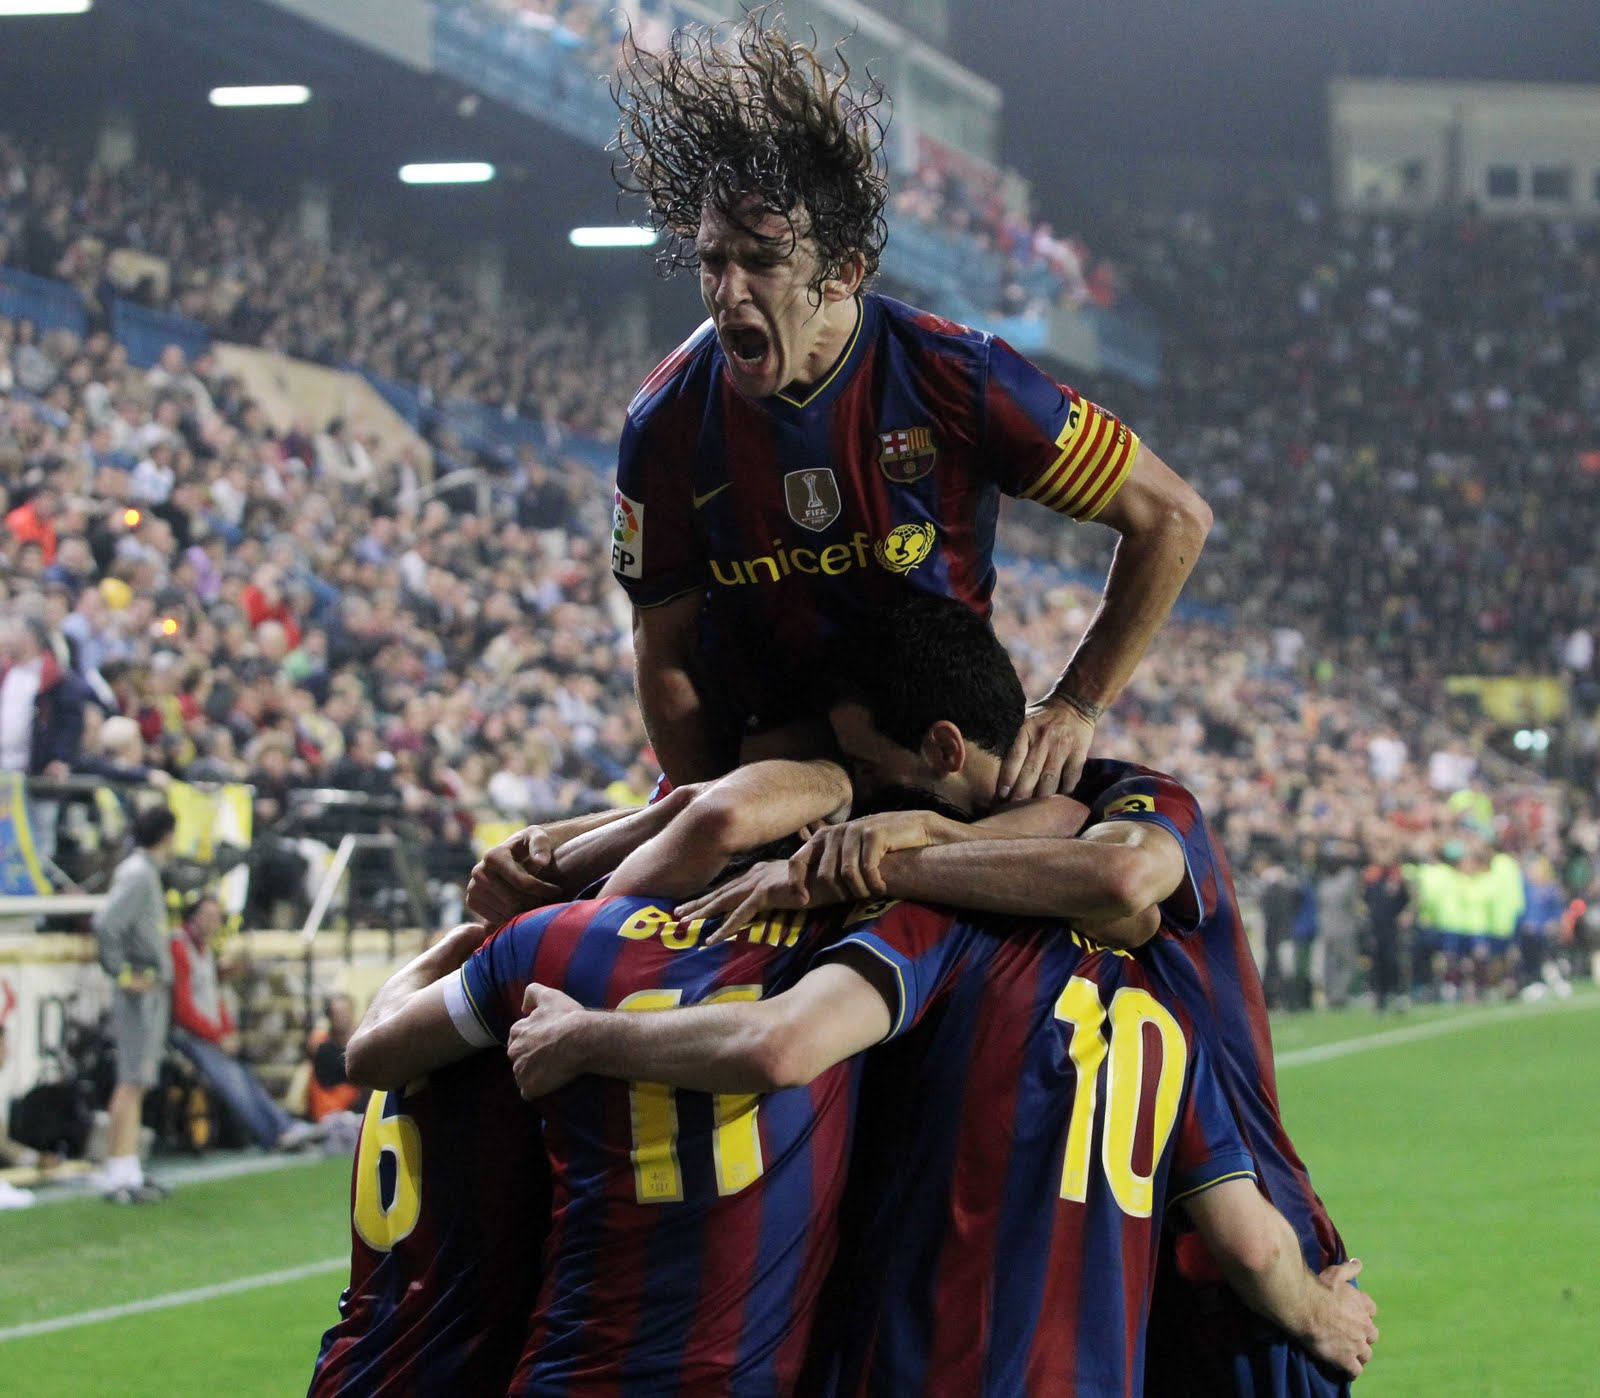 World Sports Hd Wallpapers: Carles Puyol Hd Wallpapers